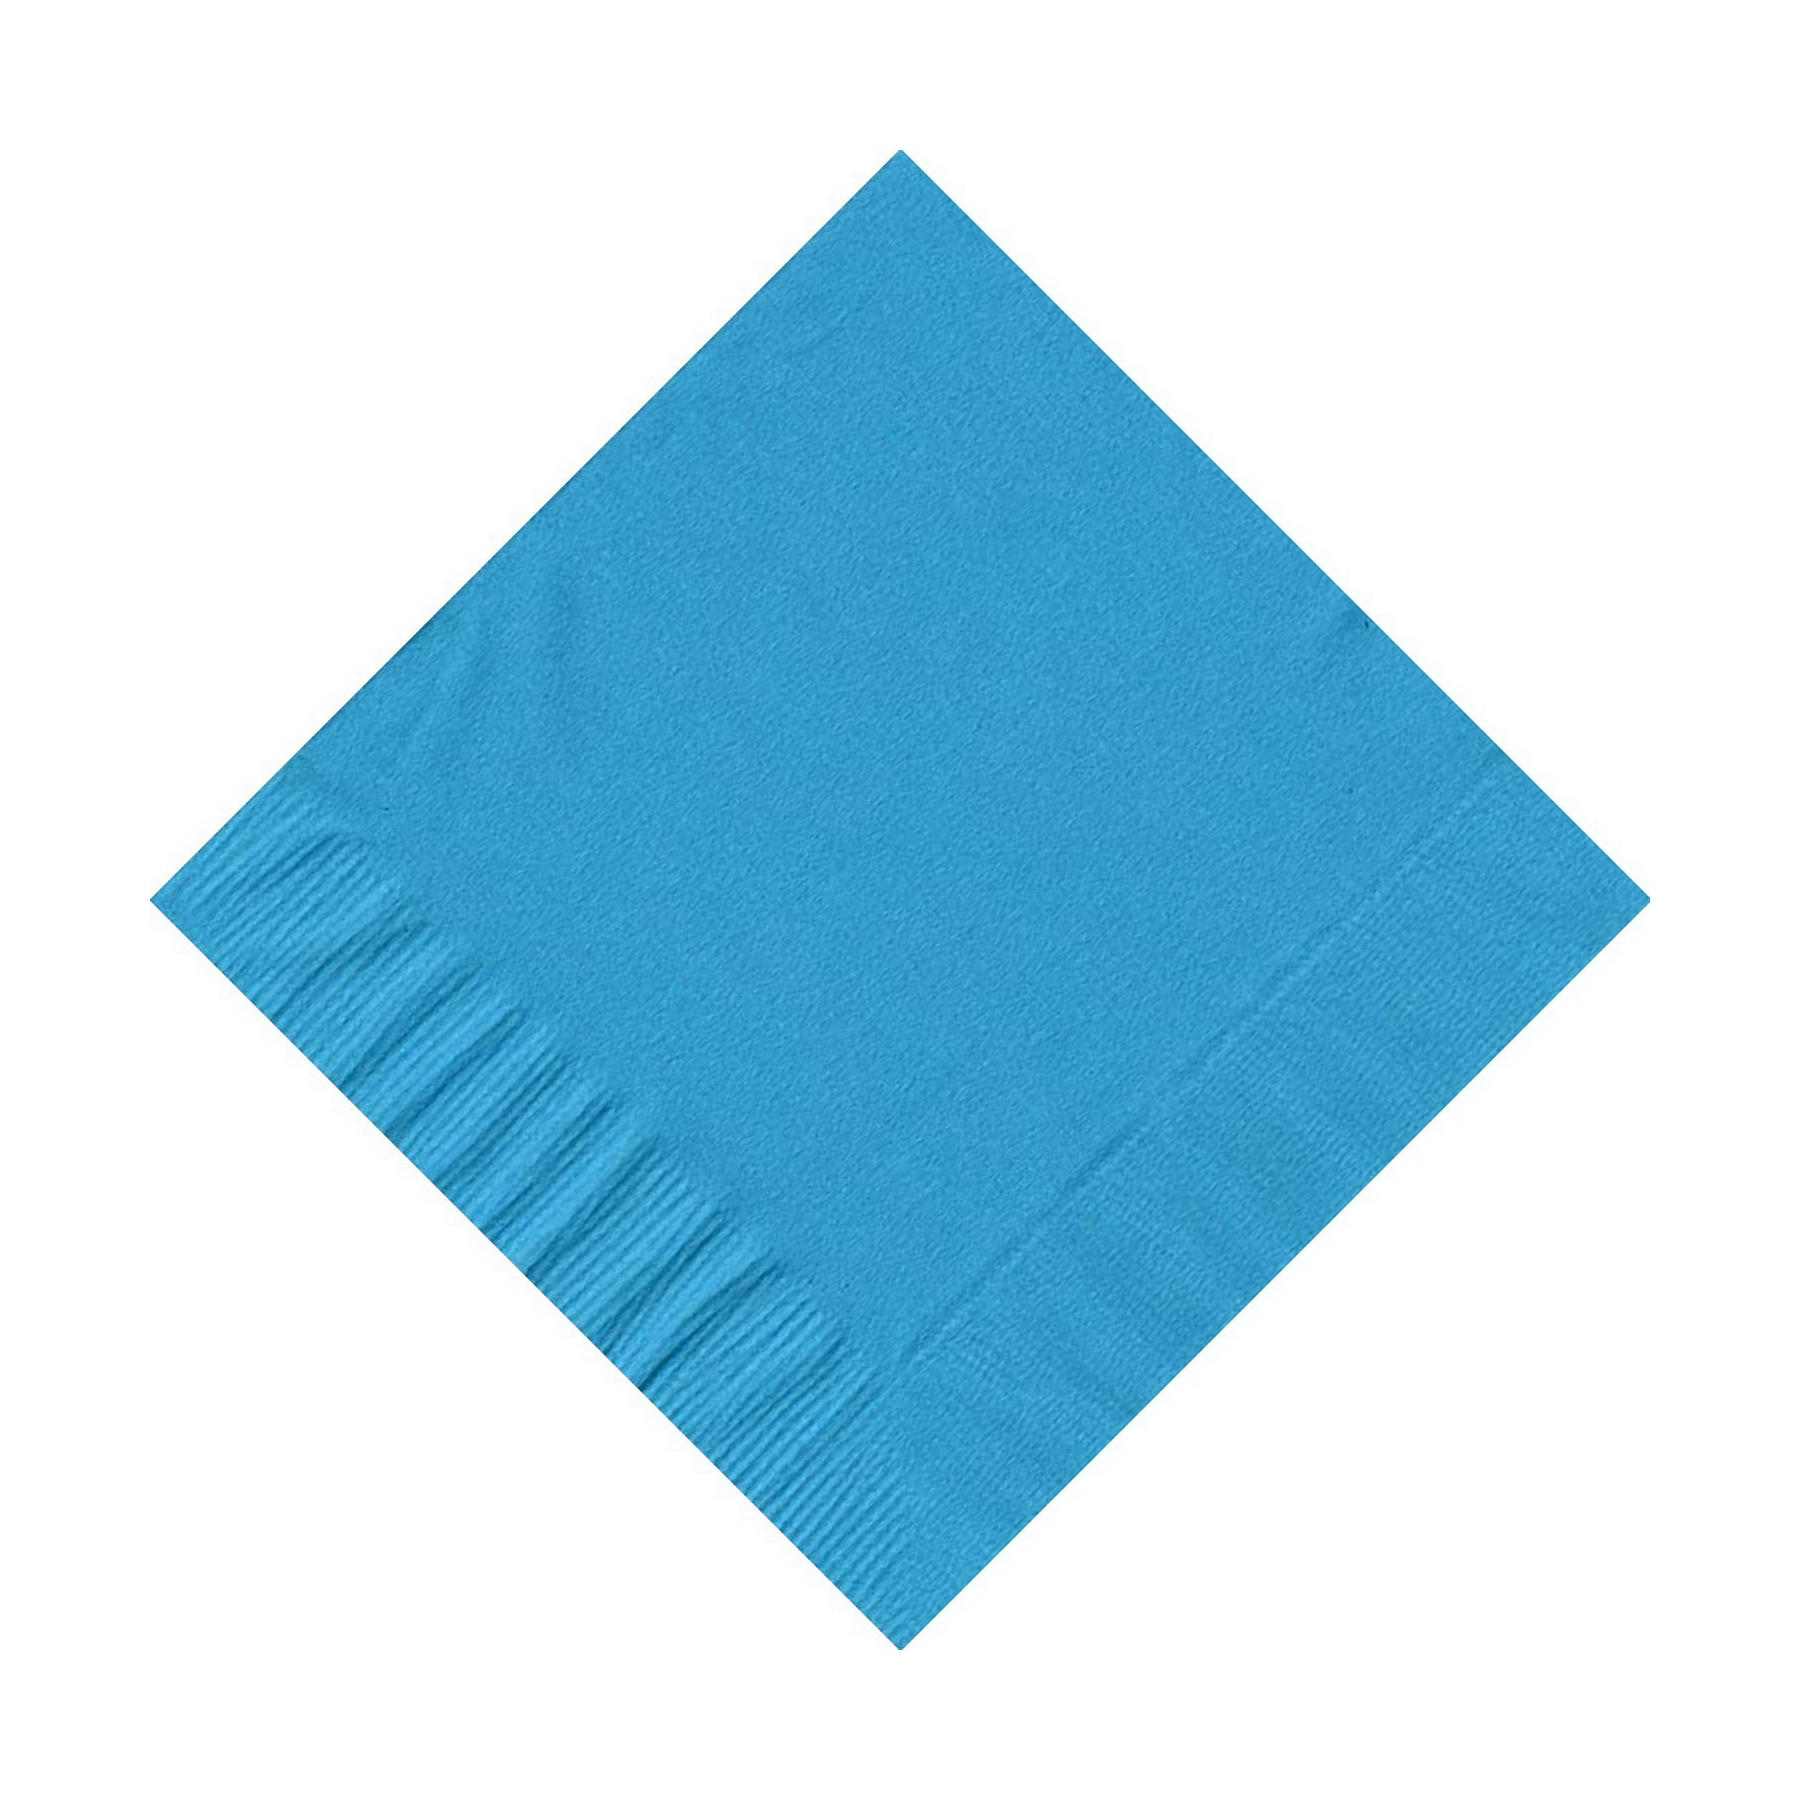 200 (4 Pks of 50) 2 Ply Plain Solid Colors Beverage Cocktail Napkins Paper Turquoise by CREATIVE CONVERTING